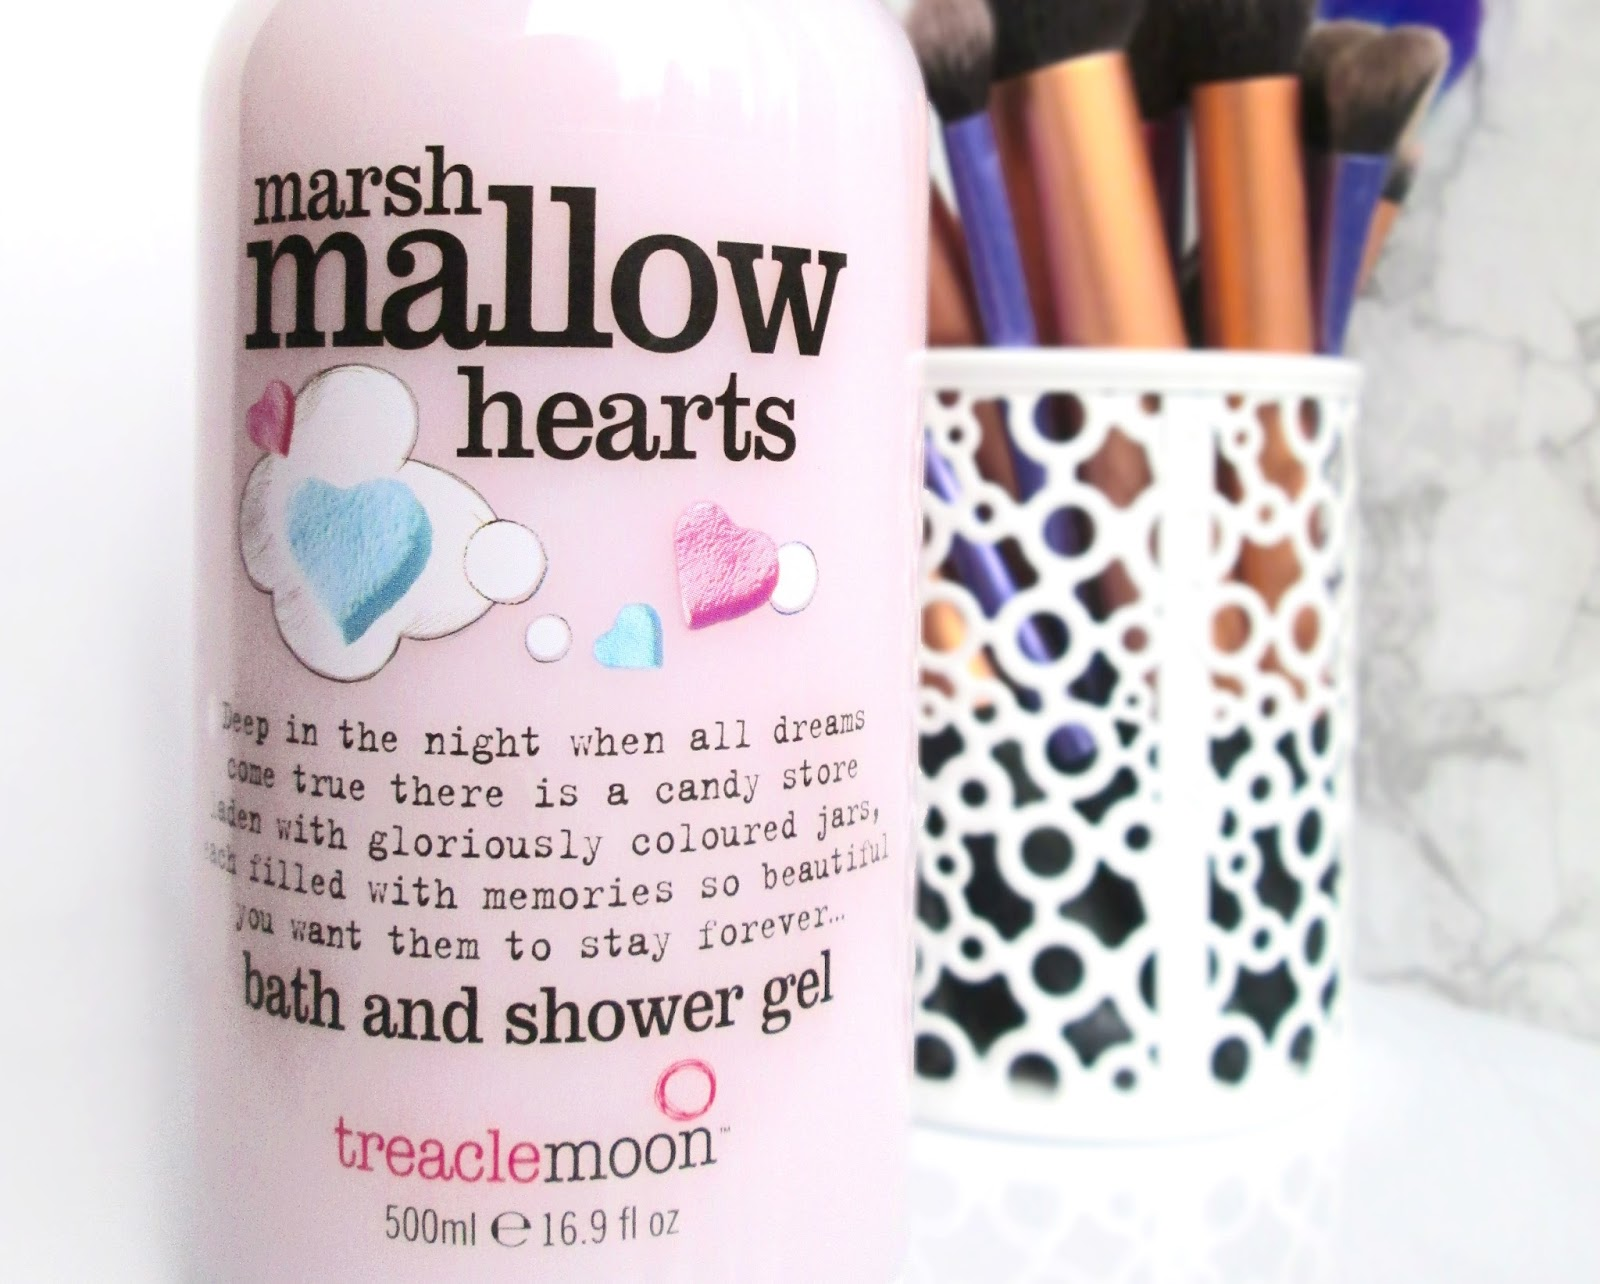 Treaclemoon Marshmallow Hearts Shower Gel